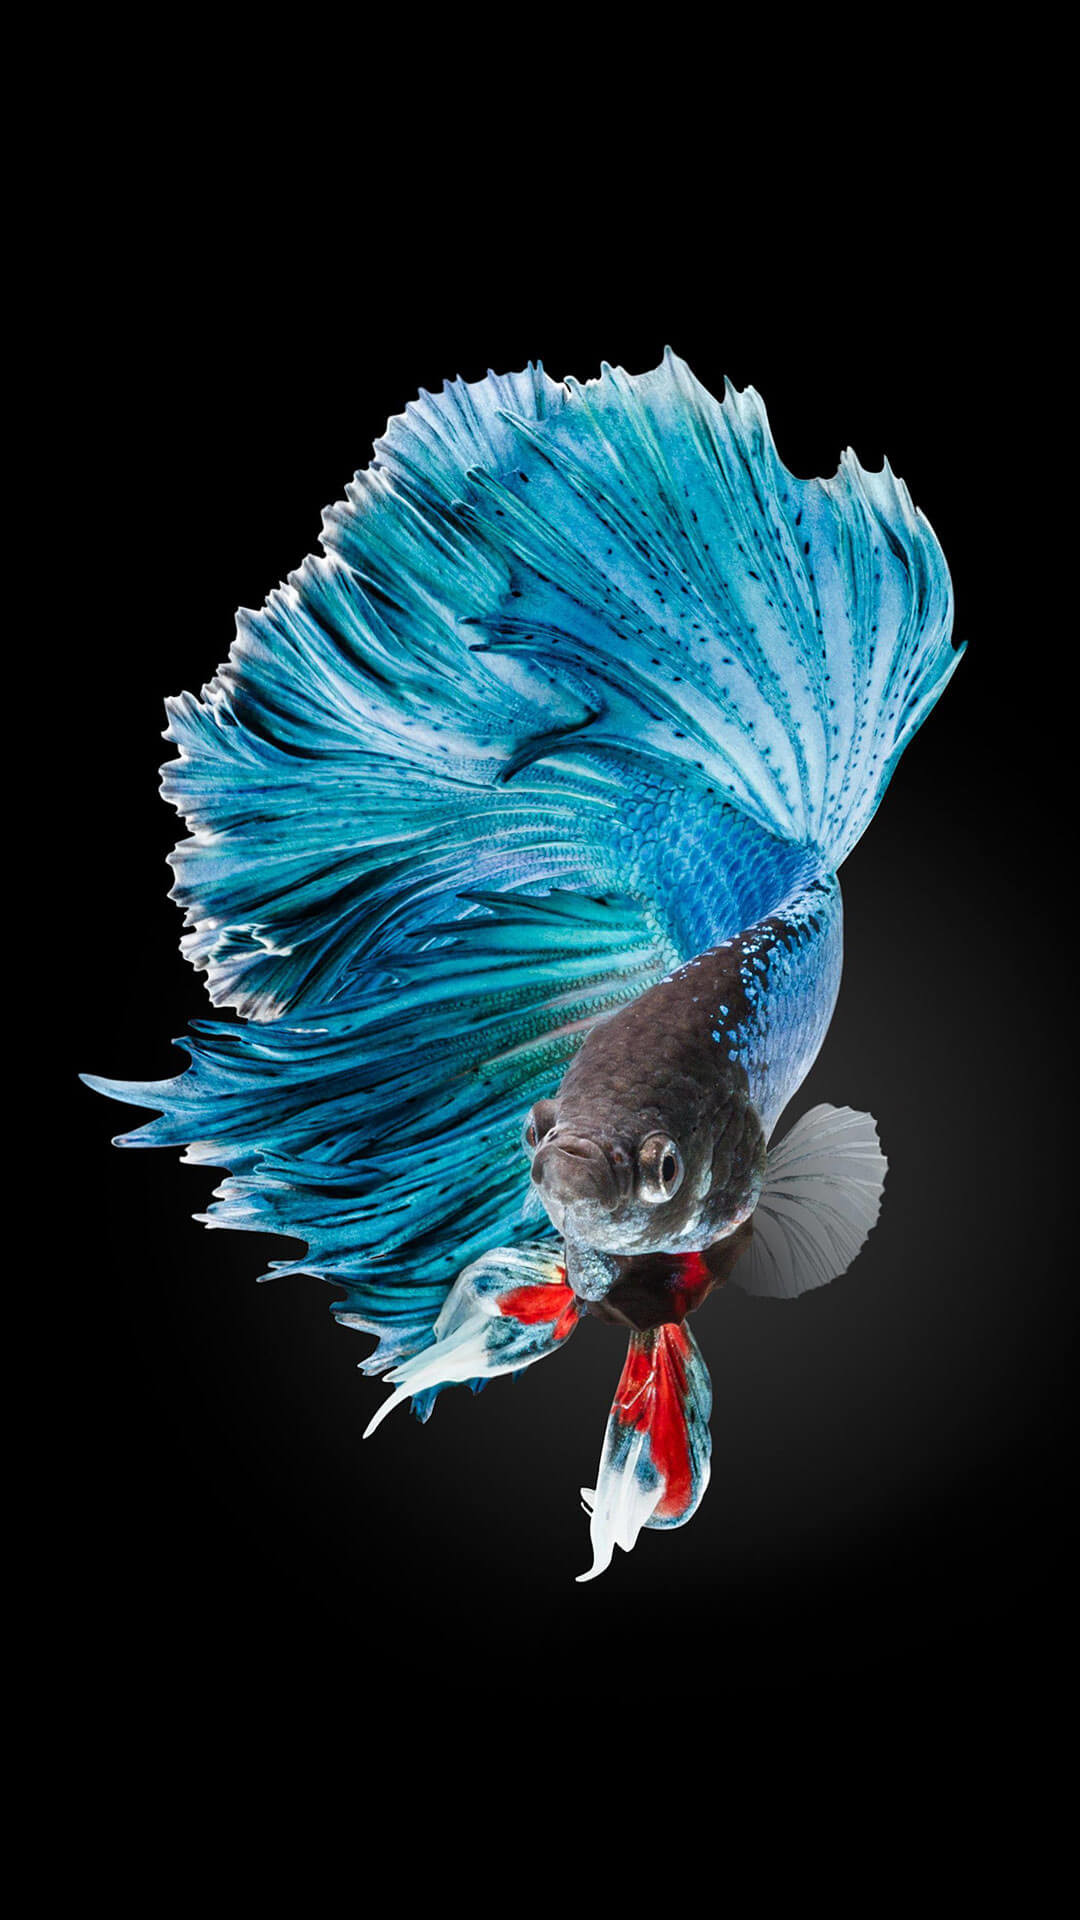 iphone 6s fish wallpapers (75 images)1080x1920 betta fish wallpaper iphone 6 and iphone 6s hd